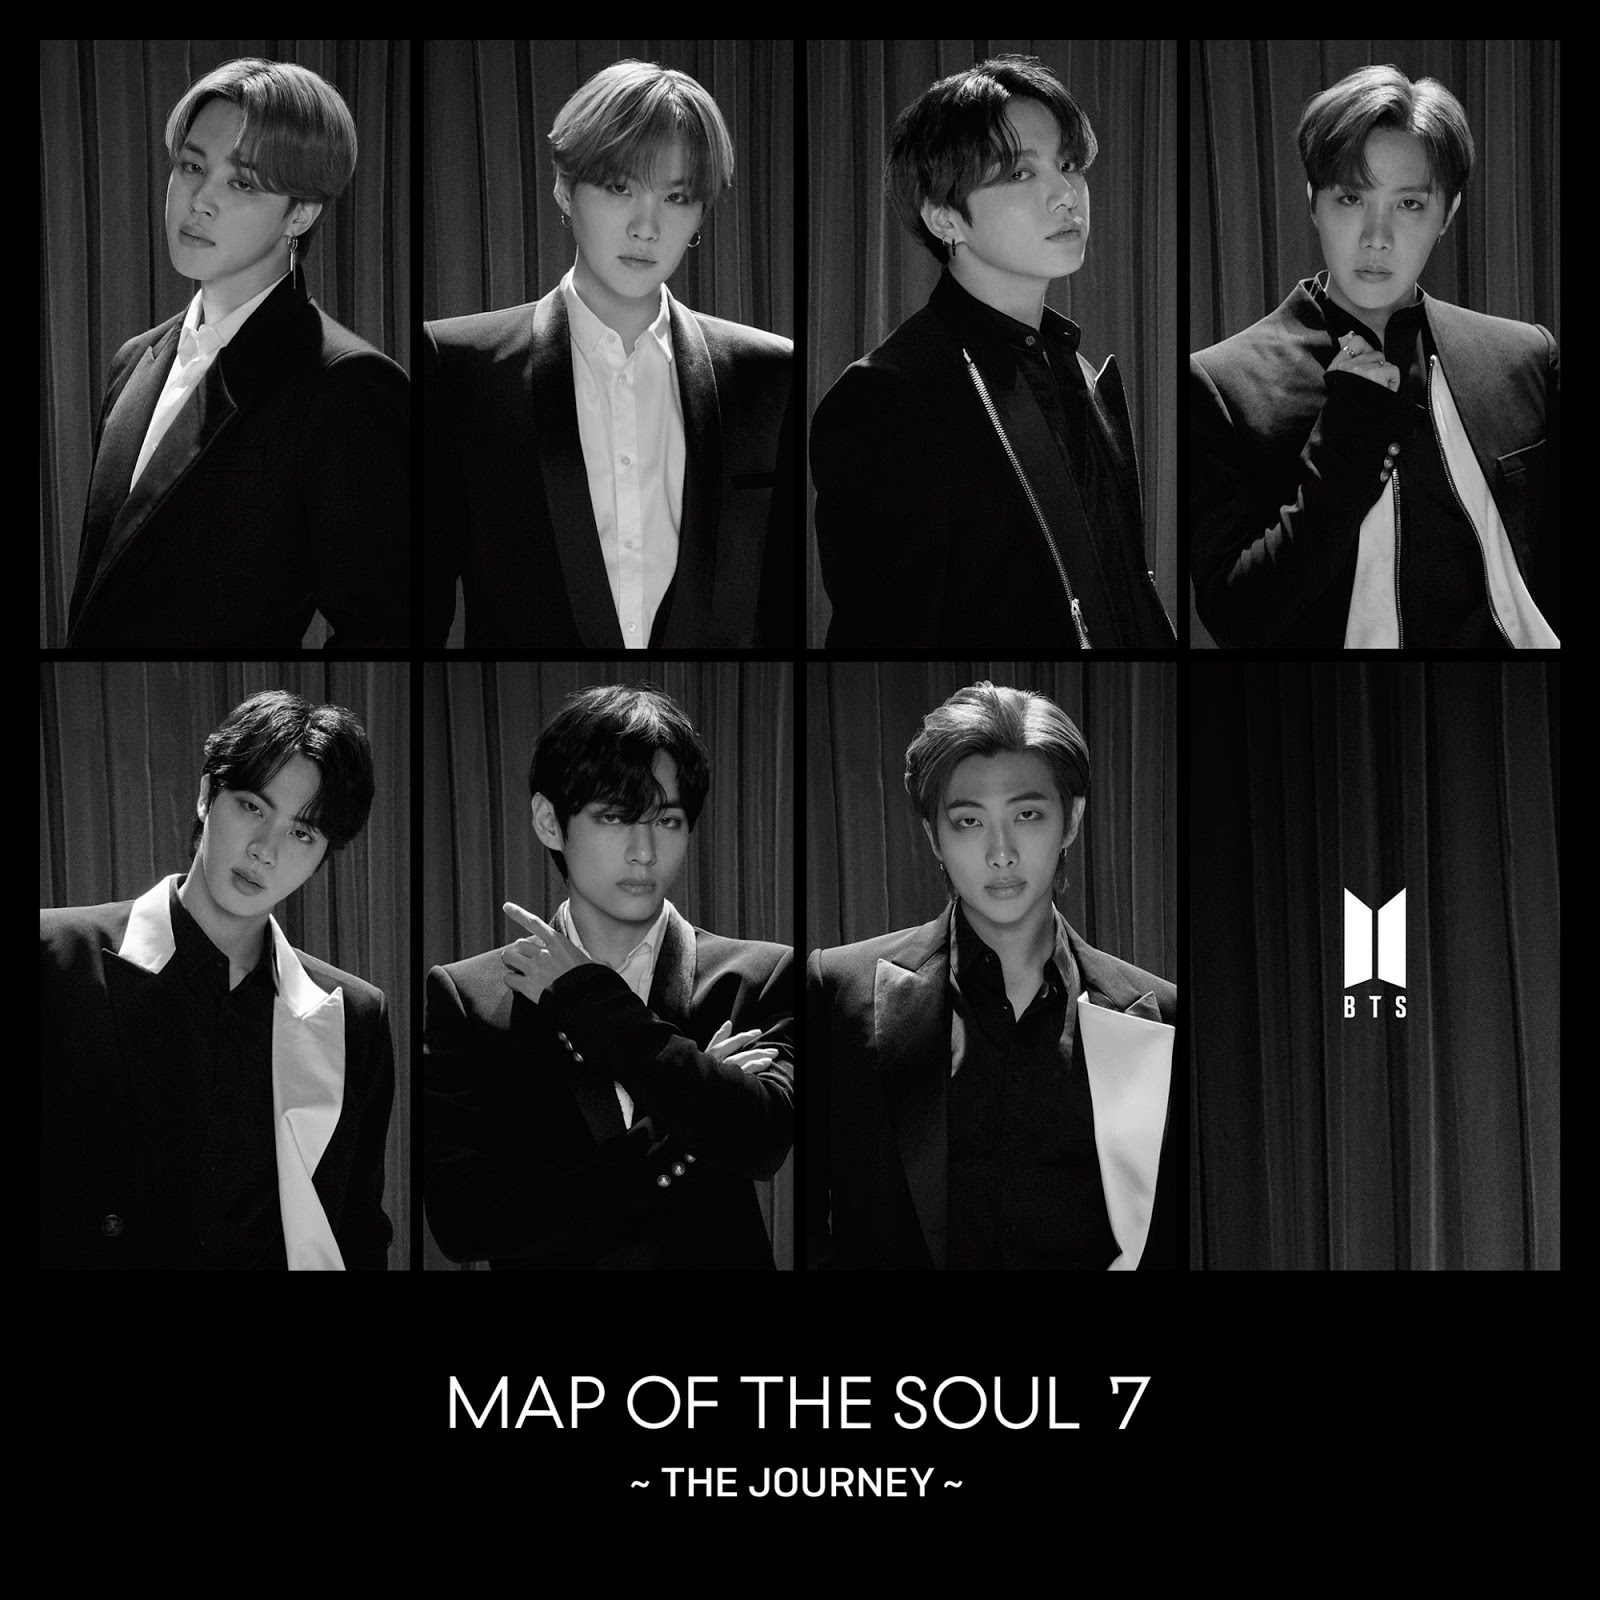 BTS Members Pose Together in The Teaser of The 4th Japanese Album 'Map of the Soul: 7 ~The Journey~'